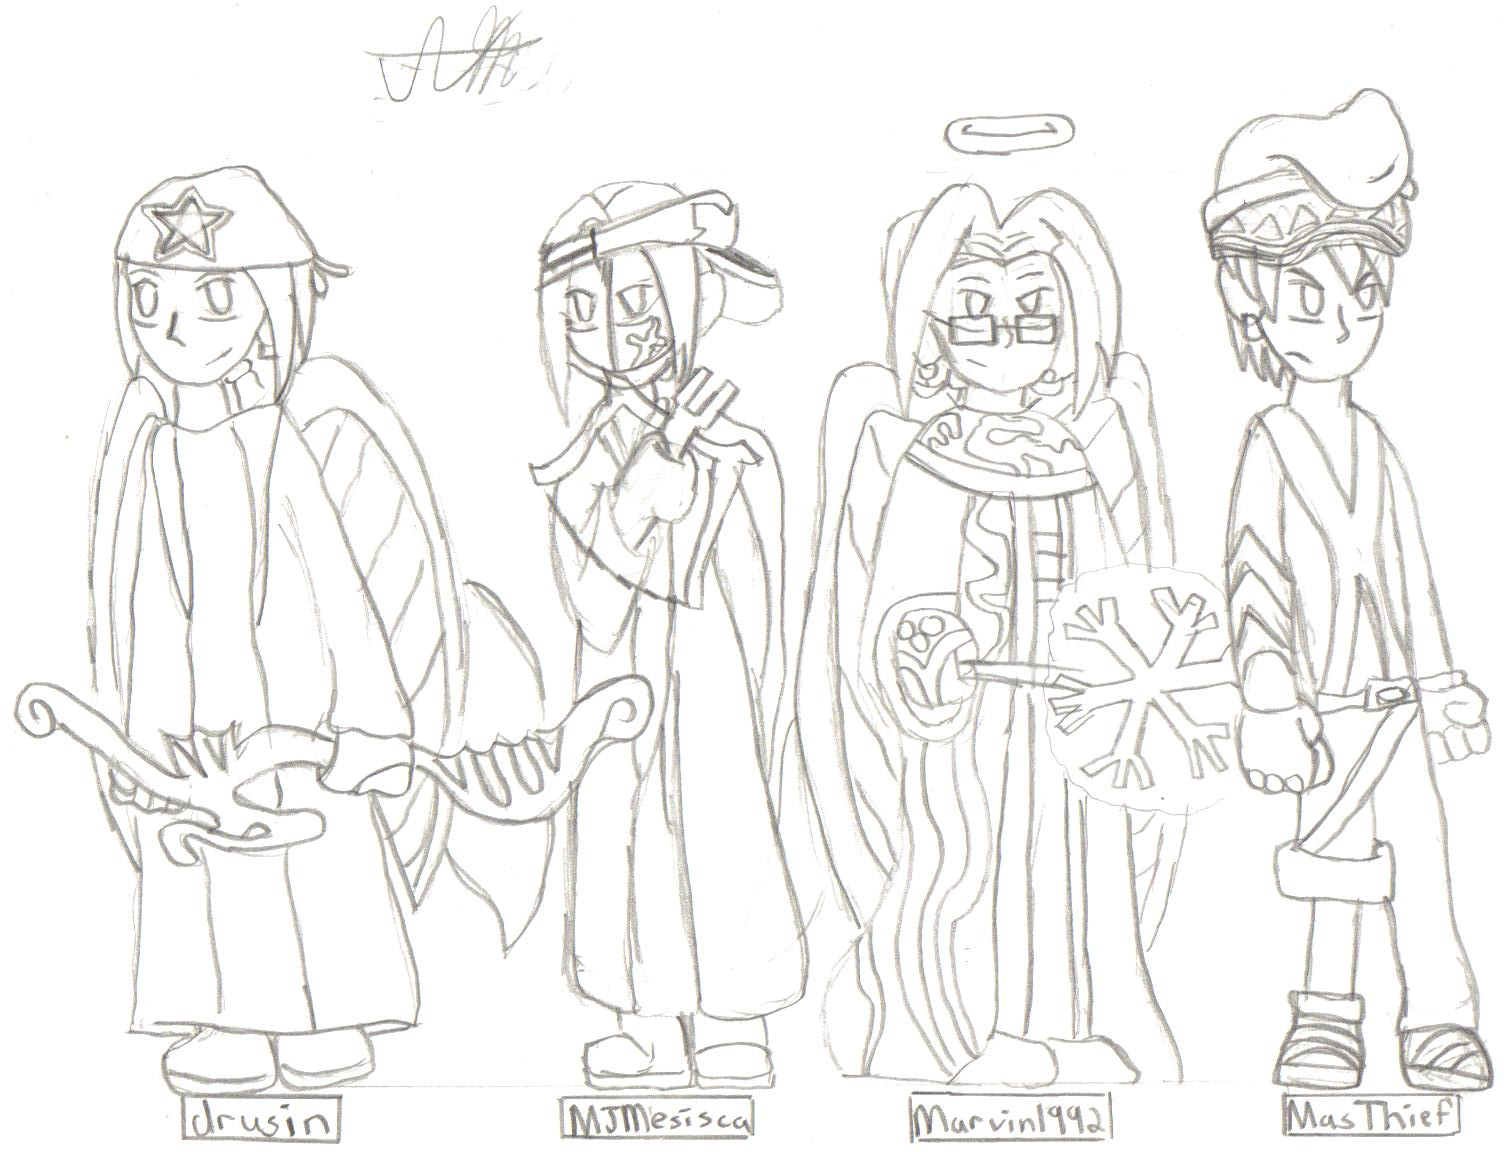 my char and my friends chars on maplestory by shadic_the_hedgehog